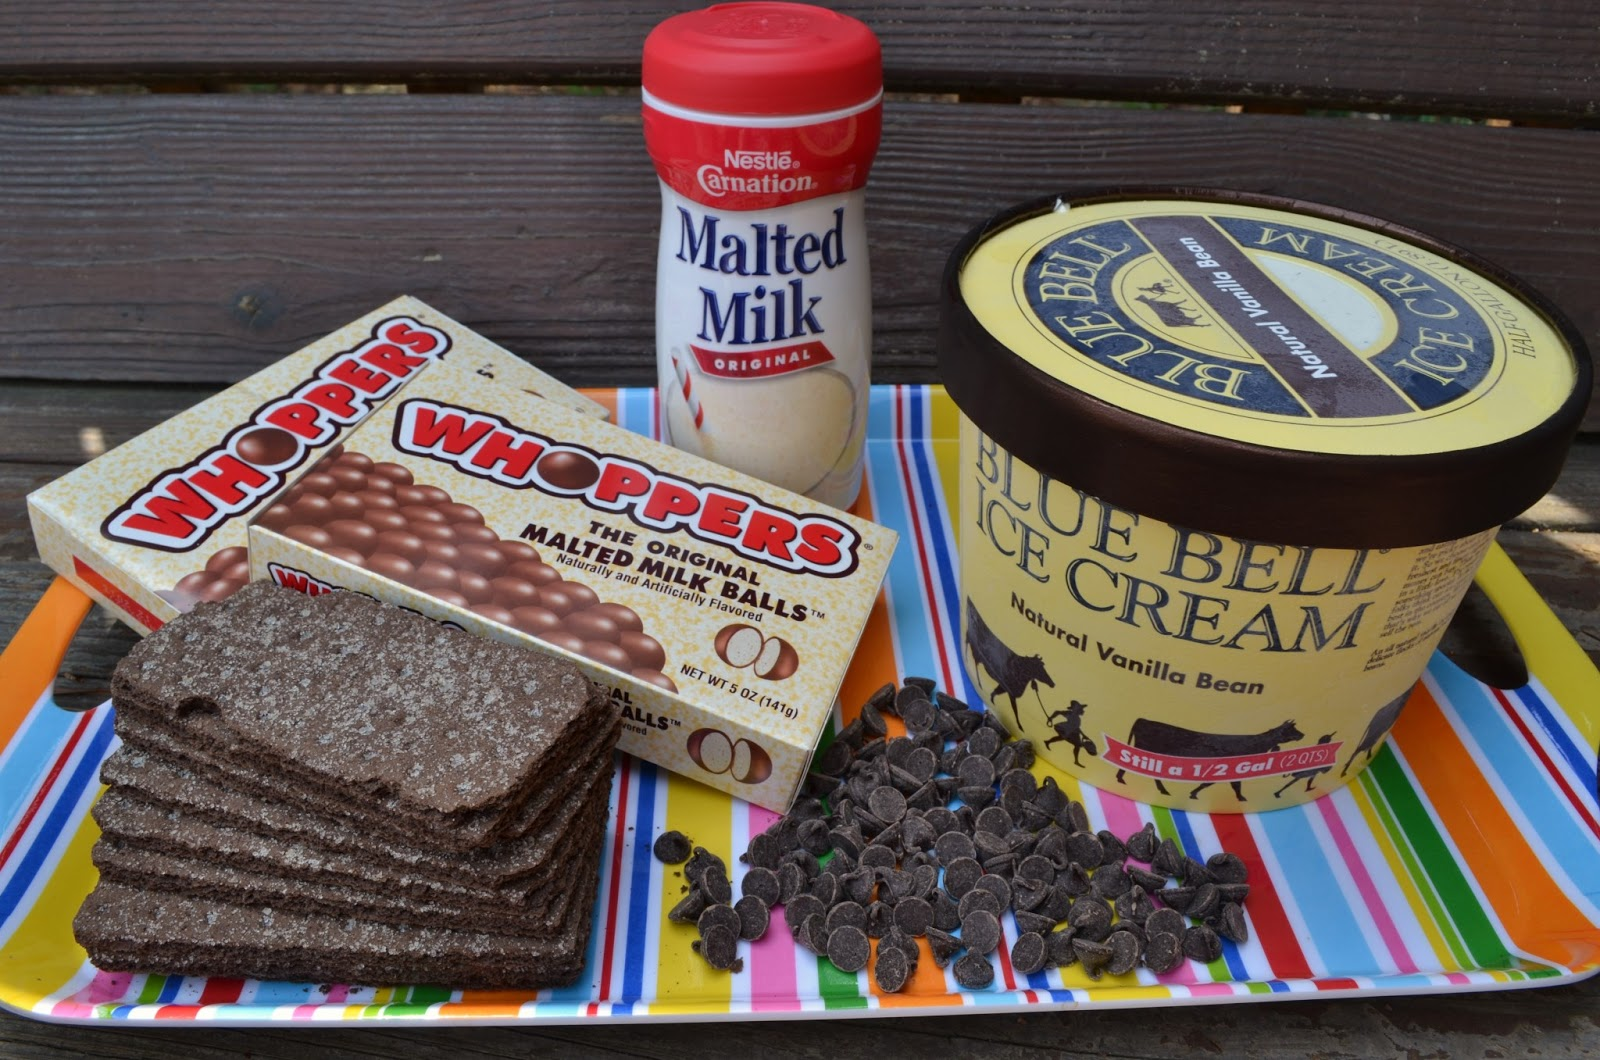 bonbons & biscotti: Whoppers Malted Milk Ball Ice Cream Cake